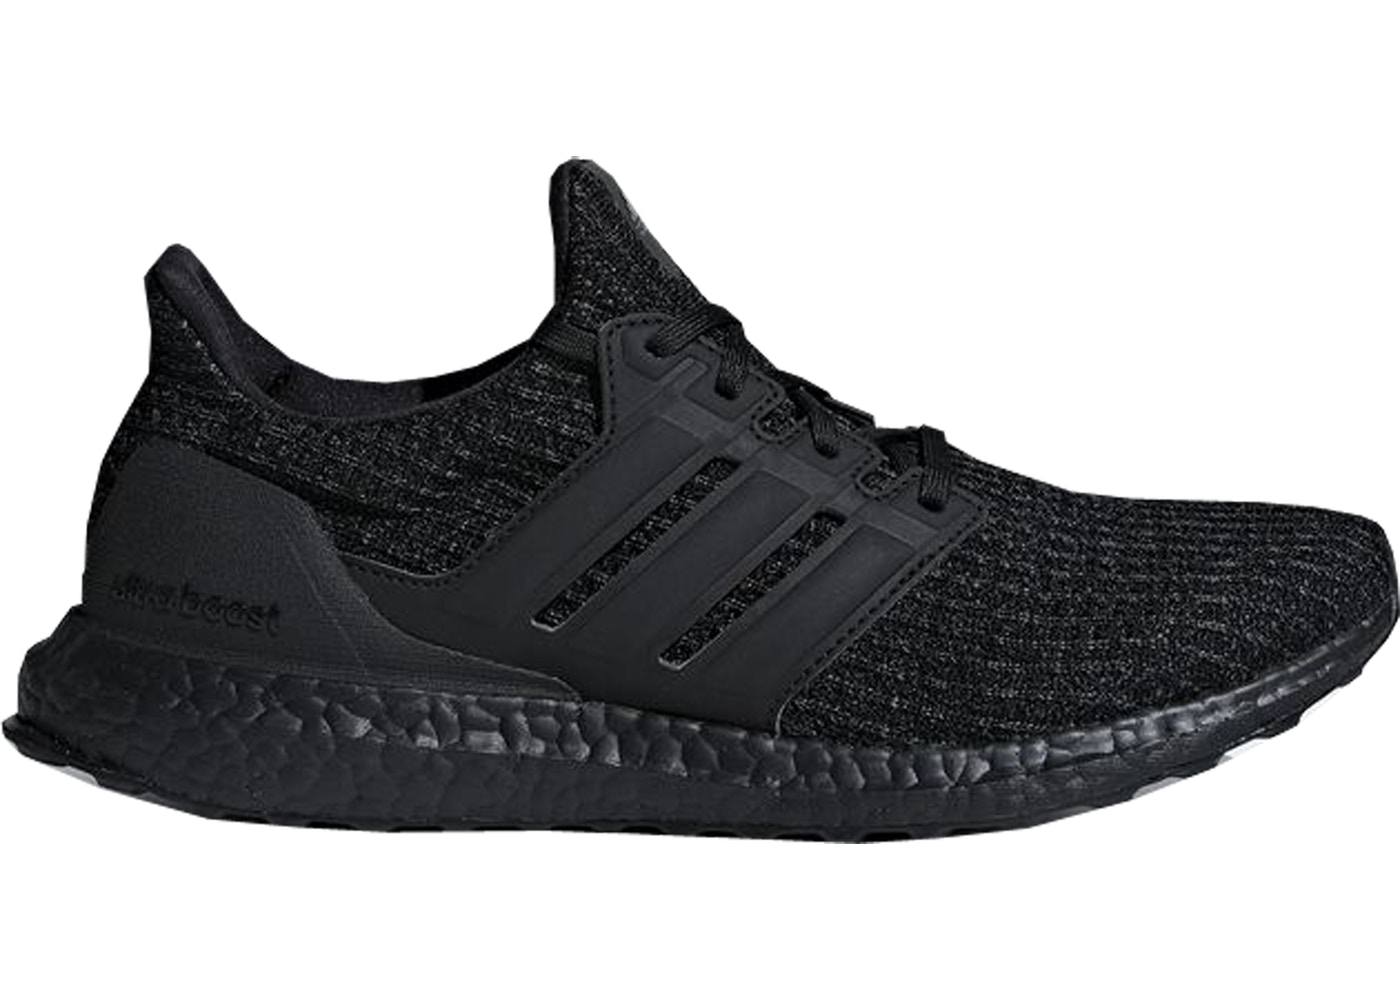 6cd311c67 Buy adidas Ultra Boost Shoes   Deadstock Sneakers